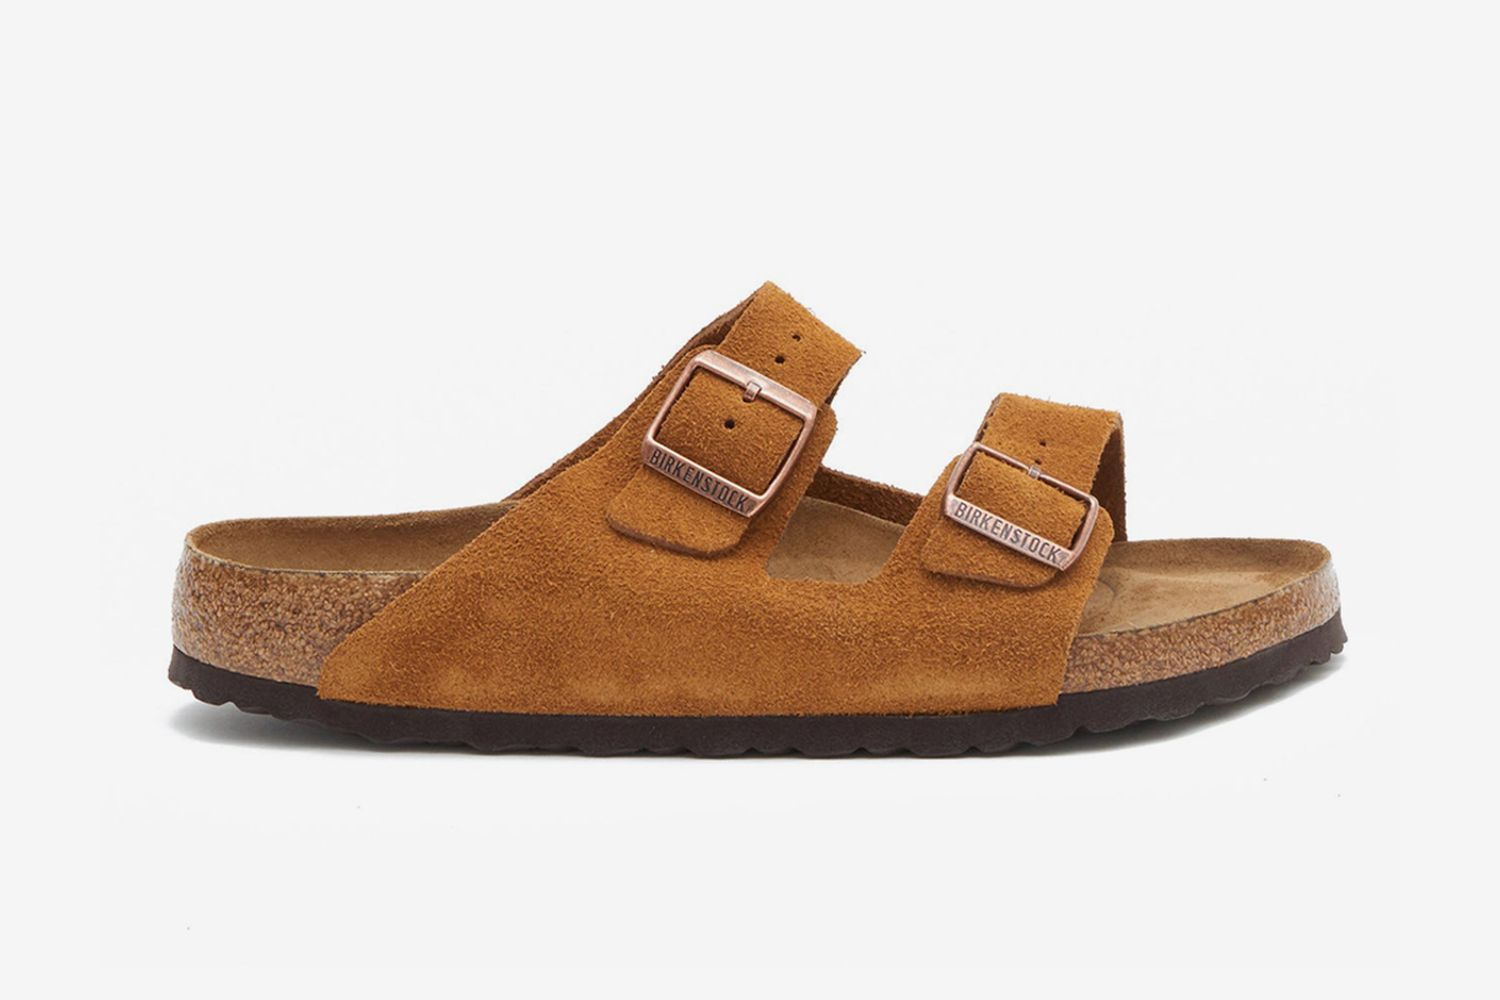 Arizona Two-Strap Suede Slides